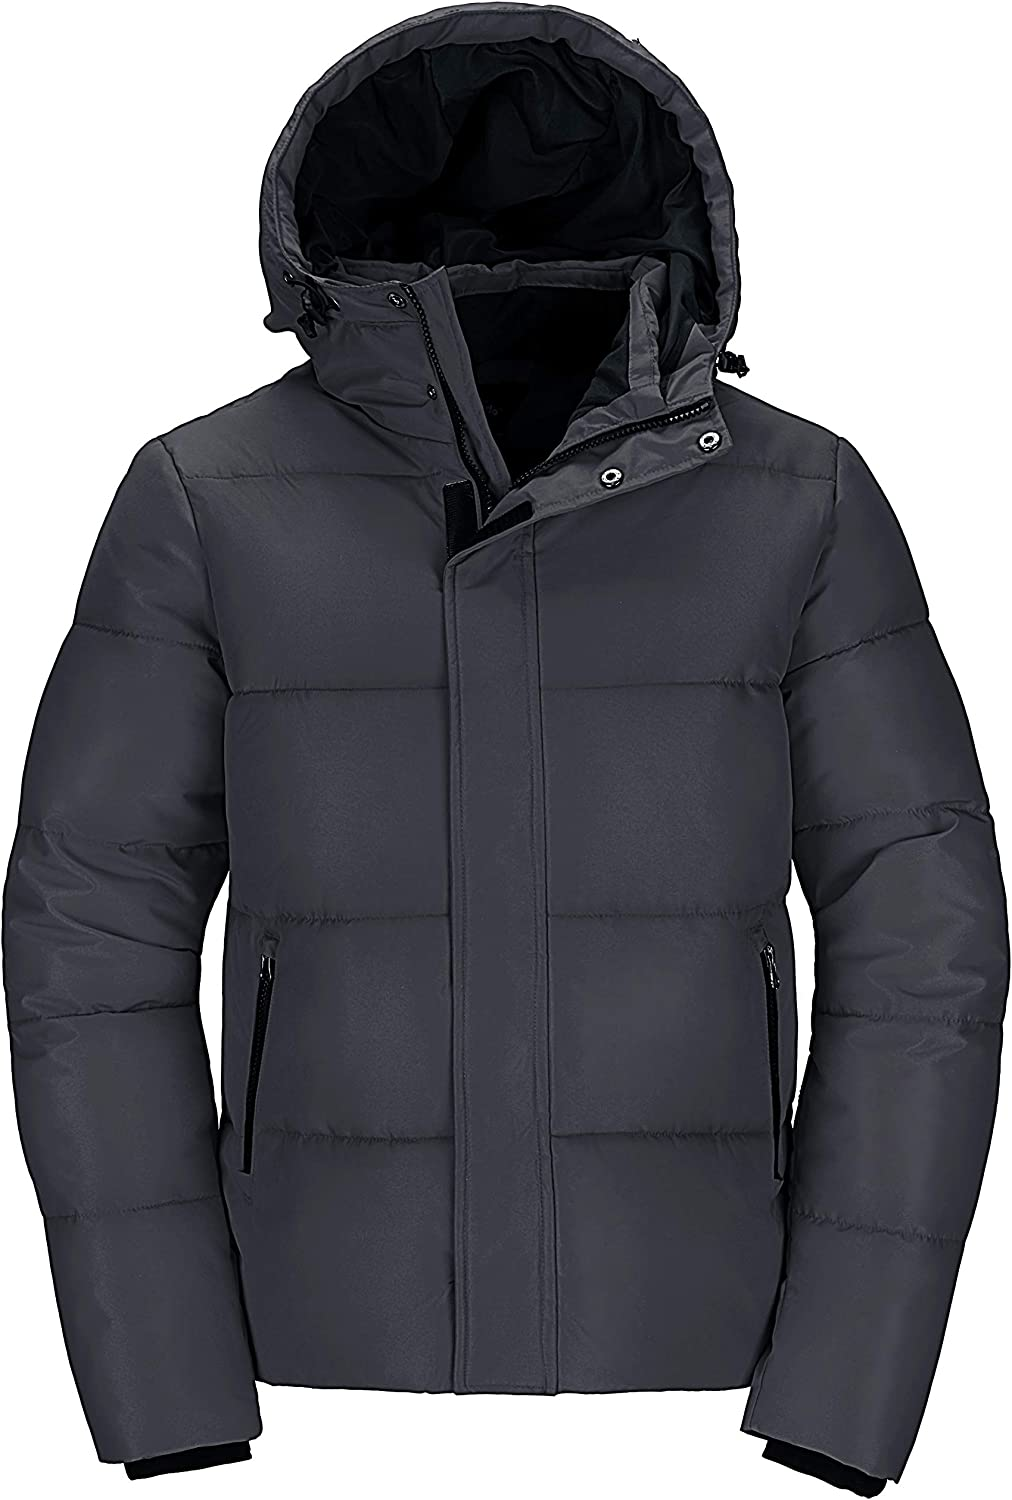 Wantdo Men's Quilted Winter Coat Thicken Puffer Jacket Warm Padded Outwear with Hood